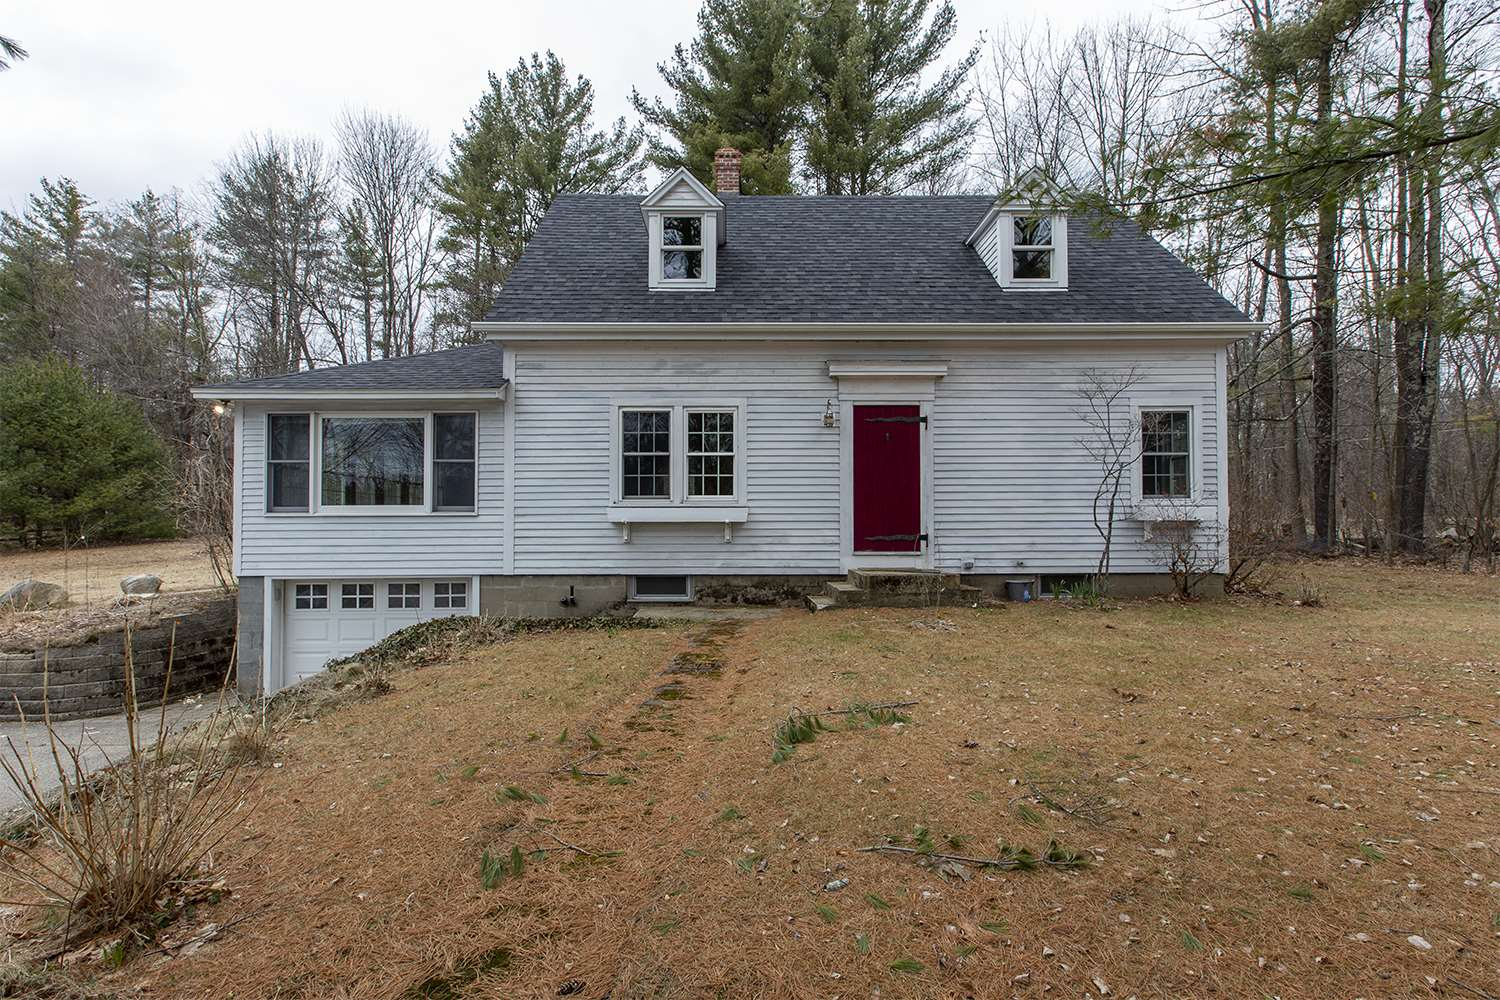 Photo of 2143 Franklin Pierce Highway Barrington NH 03825